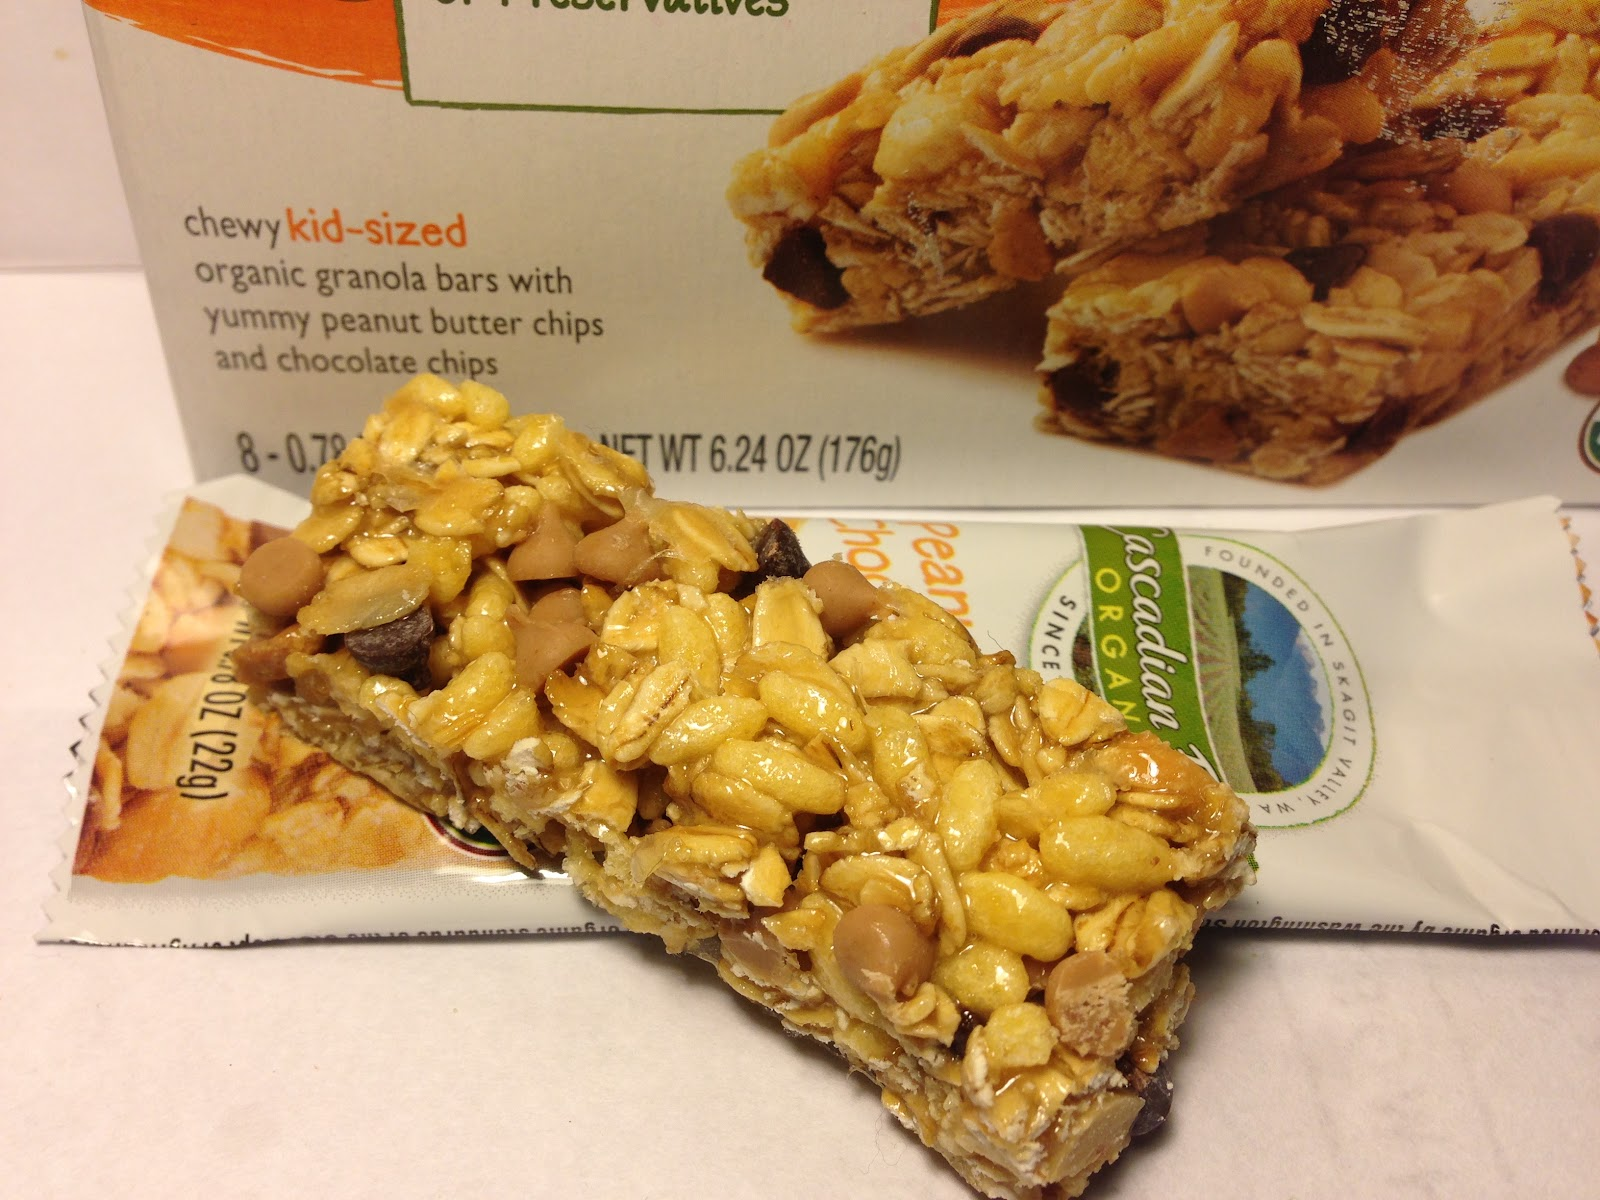 Cascadian Farm Organic Chewy Granola Bar Chocolate Chip Calories